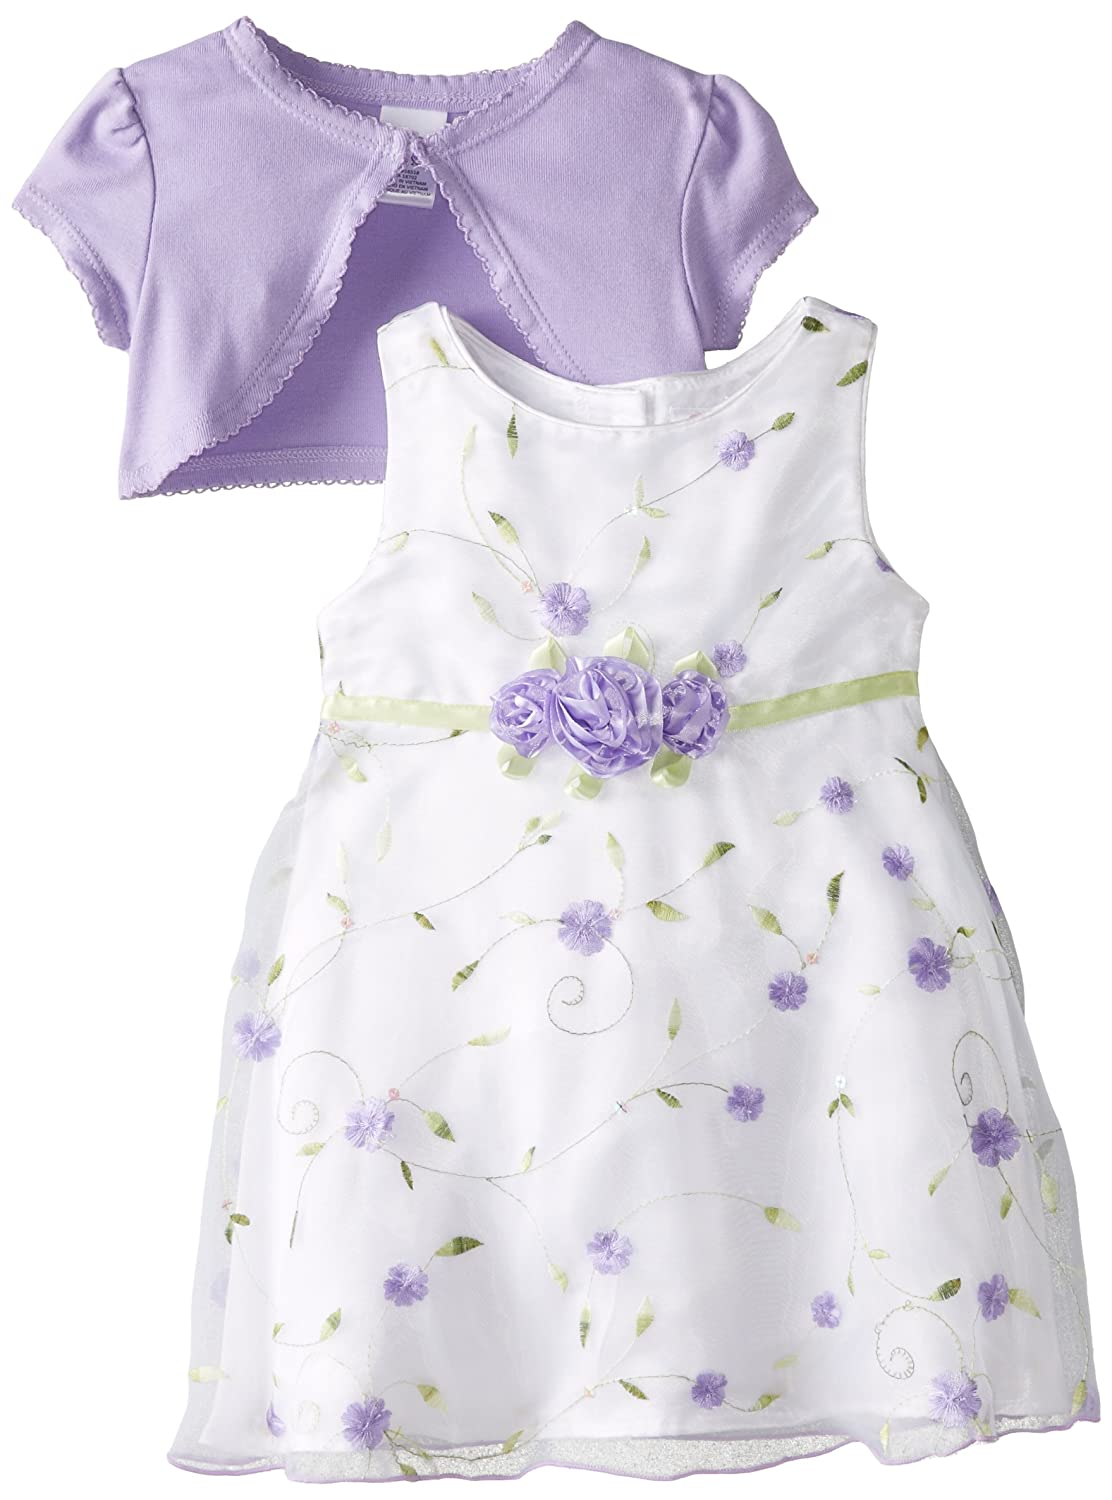 Attractive Baby Dressing Gown 6 9 Months Pattern - Wedding and ...